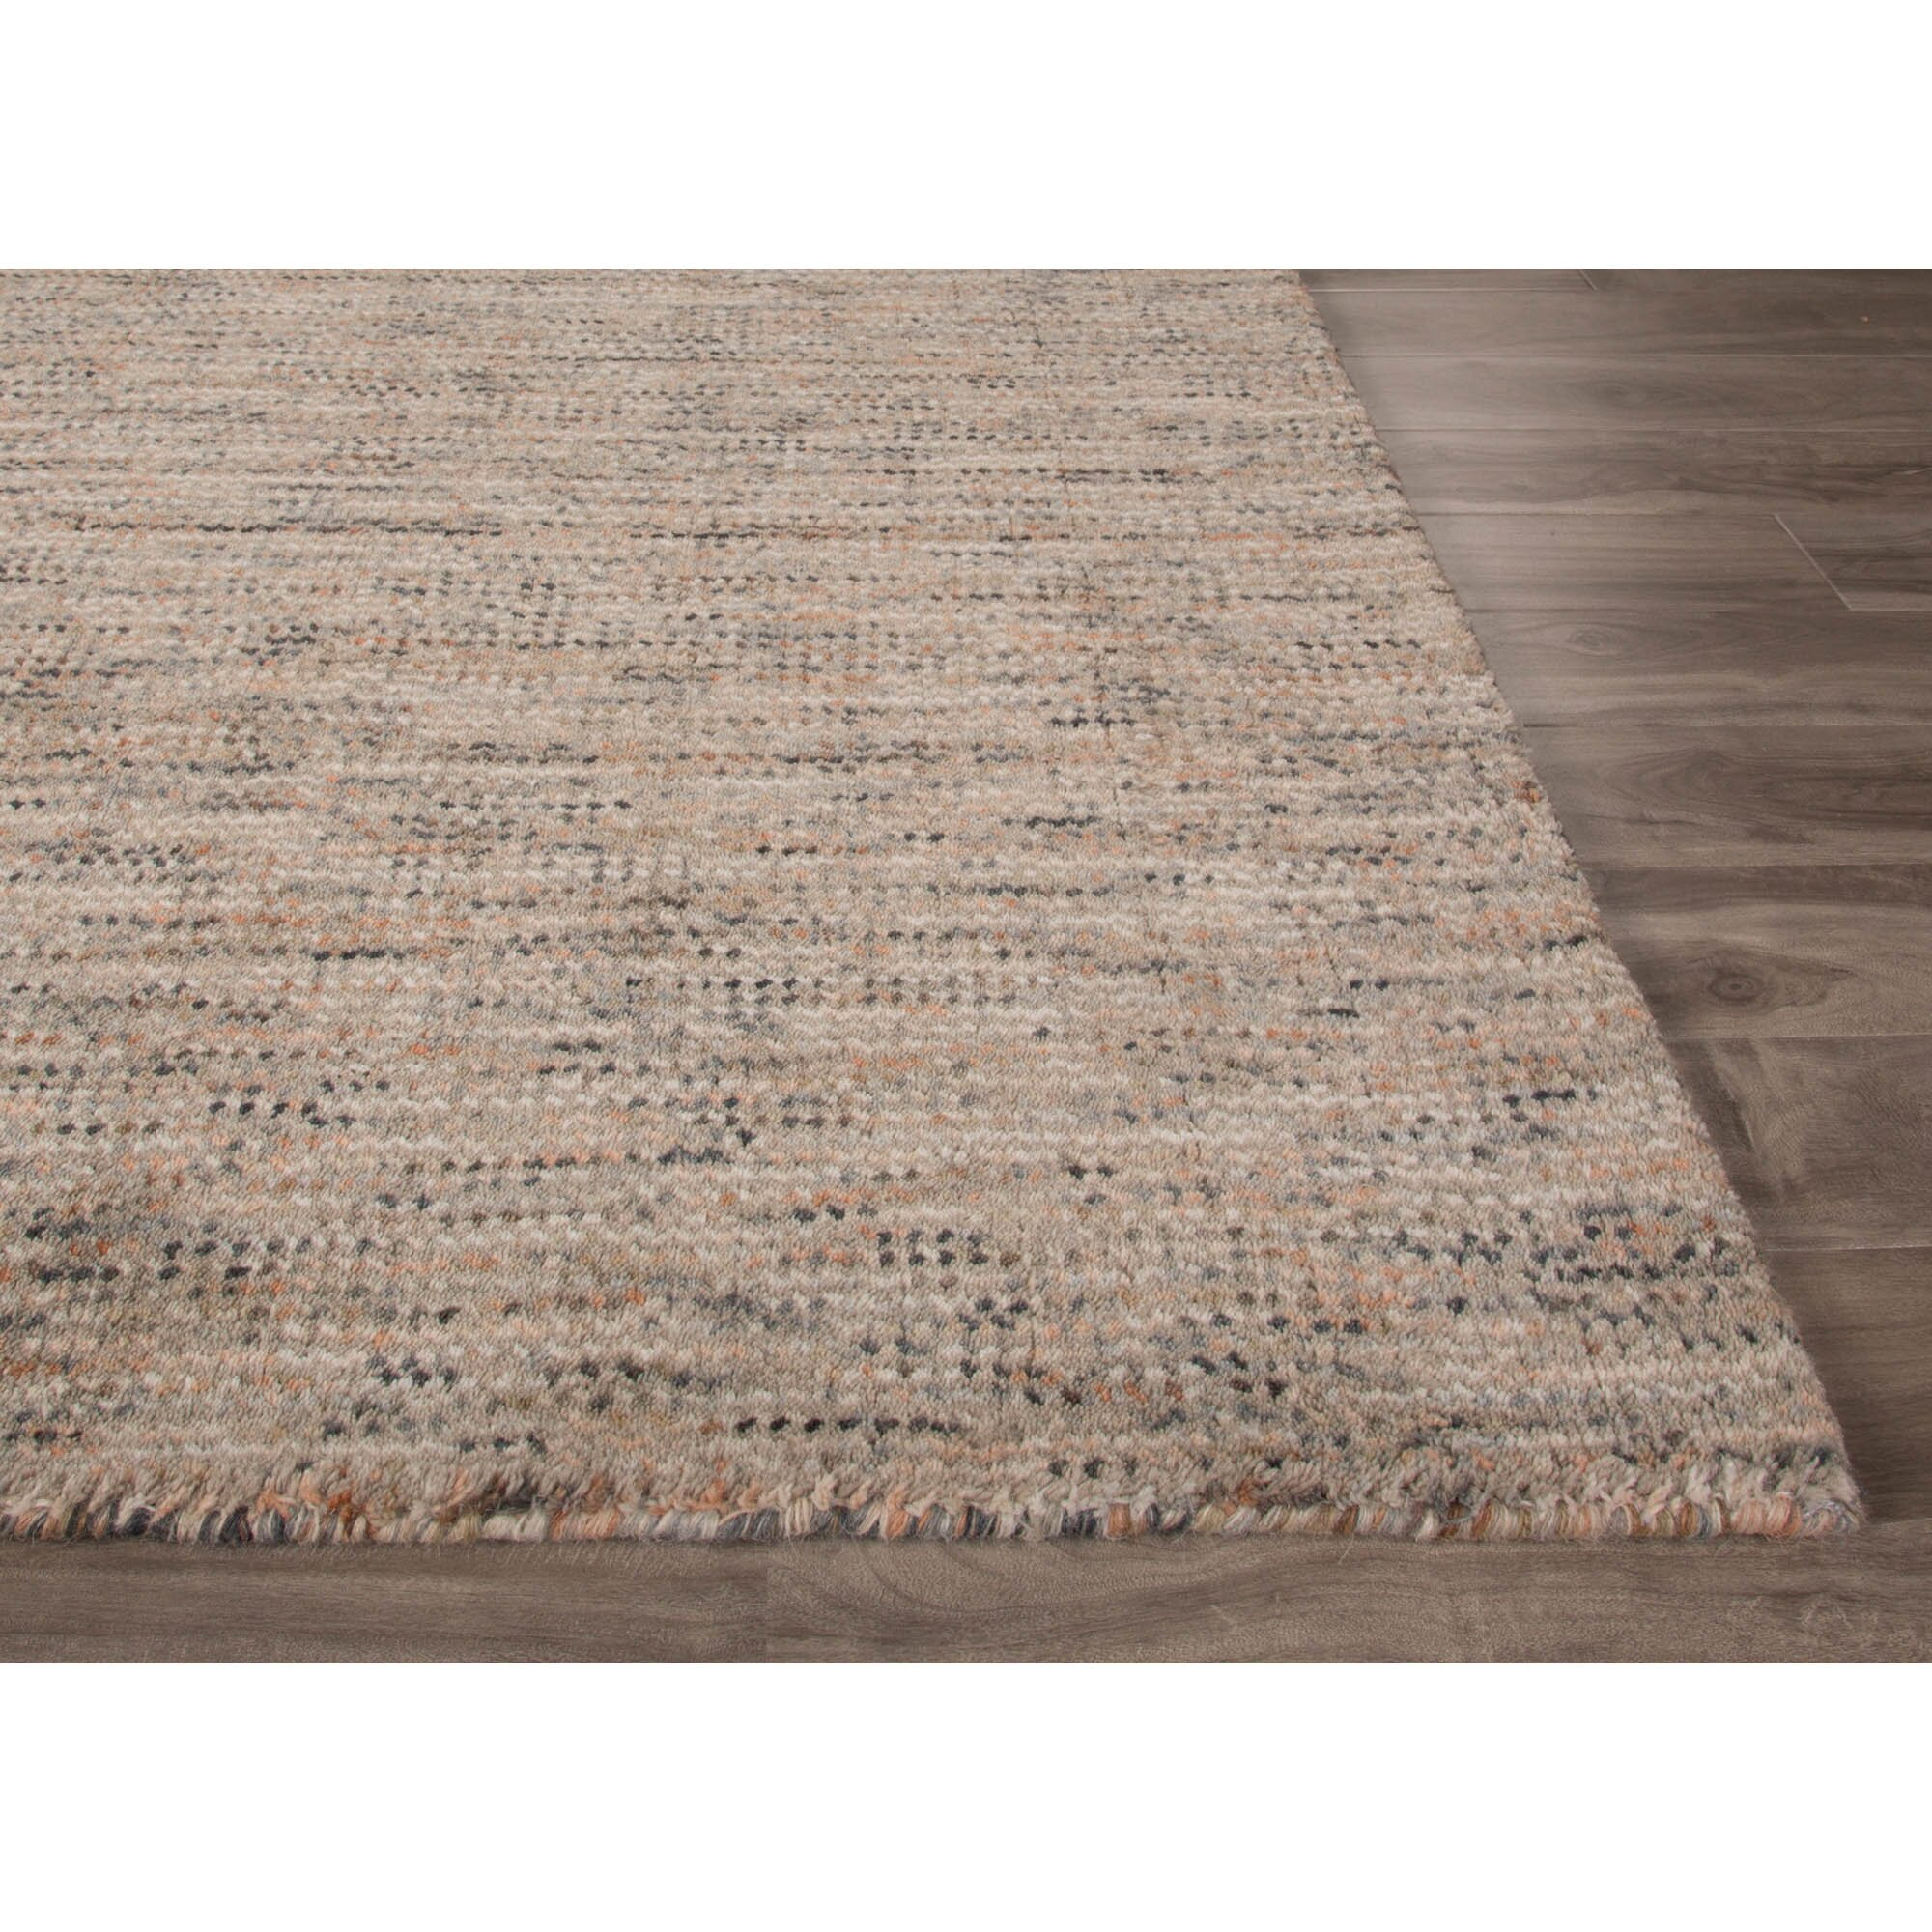 Jaipurliving alton hand loomed gray tan area rug wayfair for Grey and tan rug